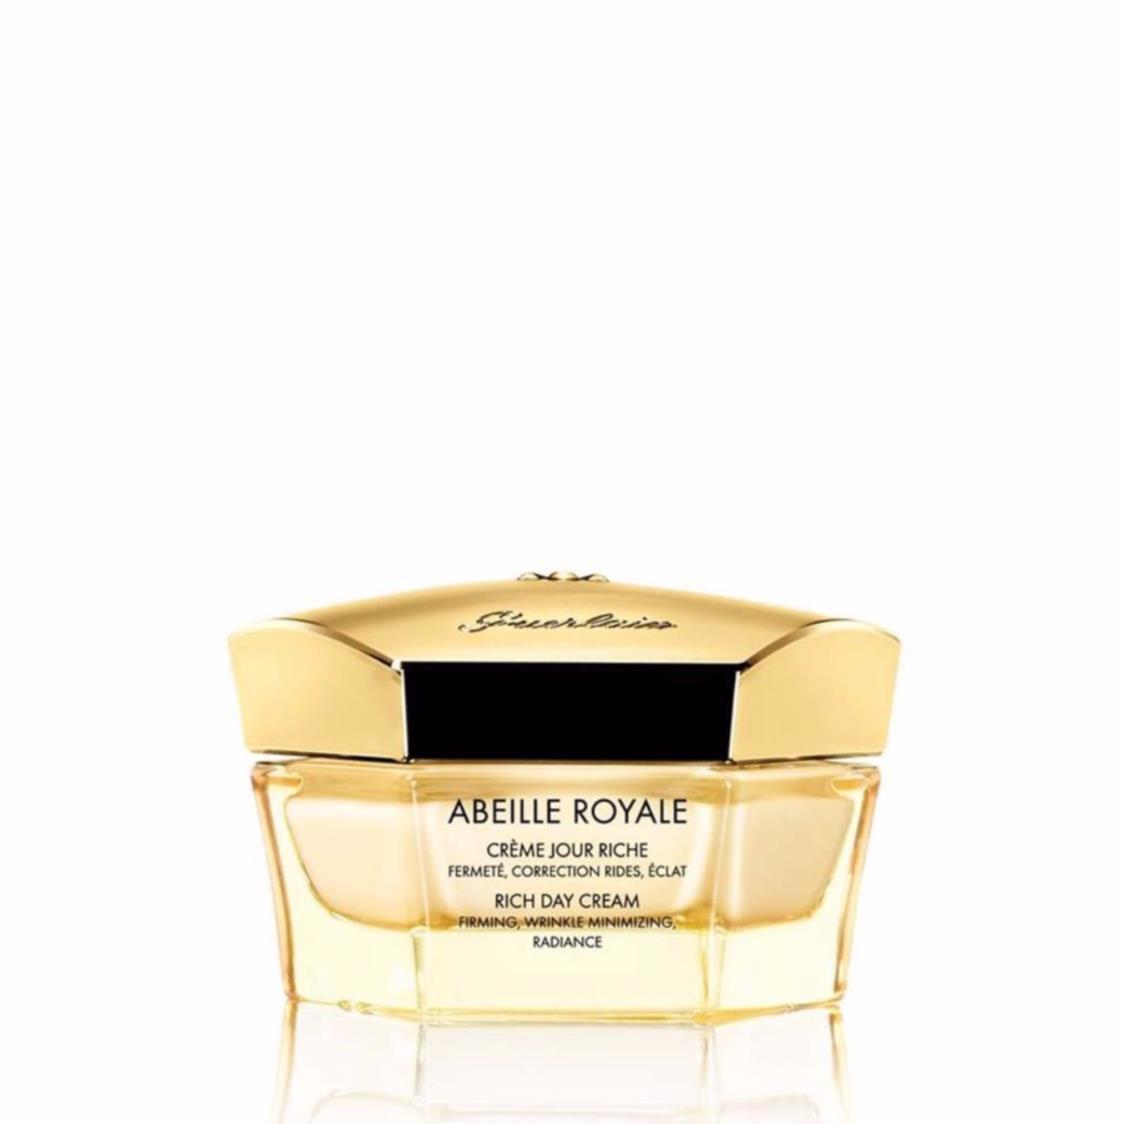 Abeille Royale Rich Day Cream 50ml